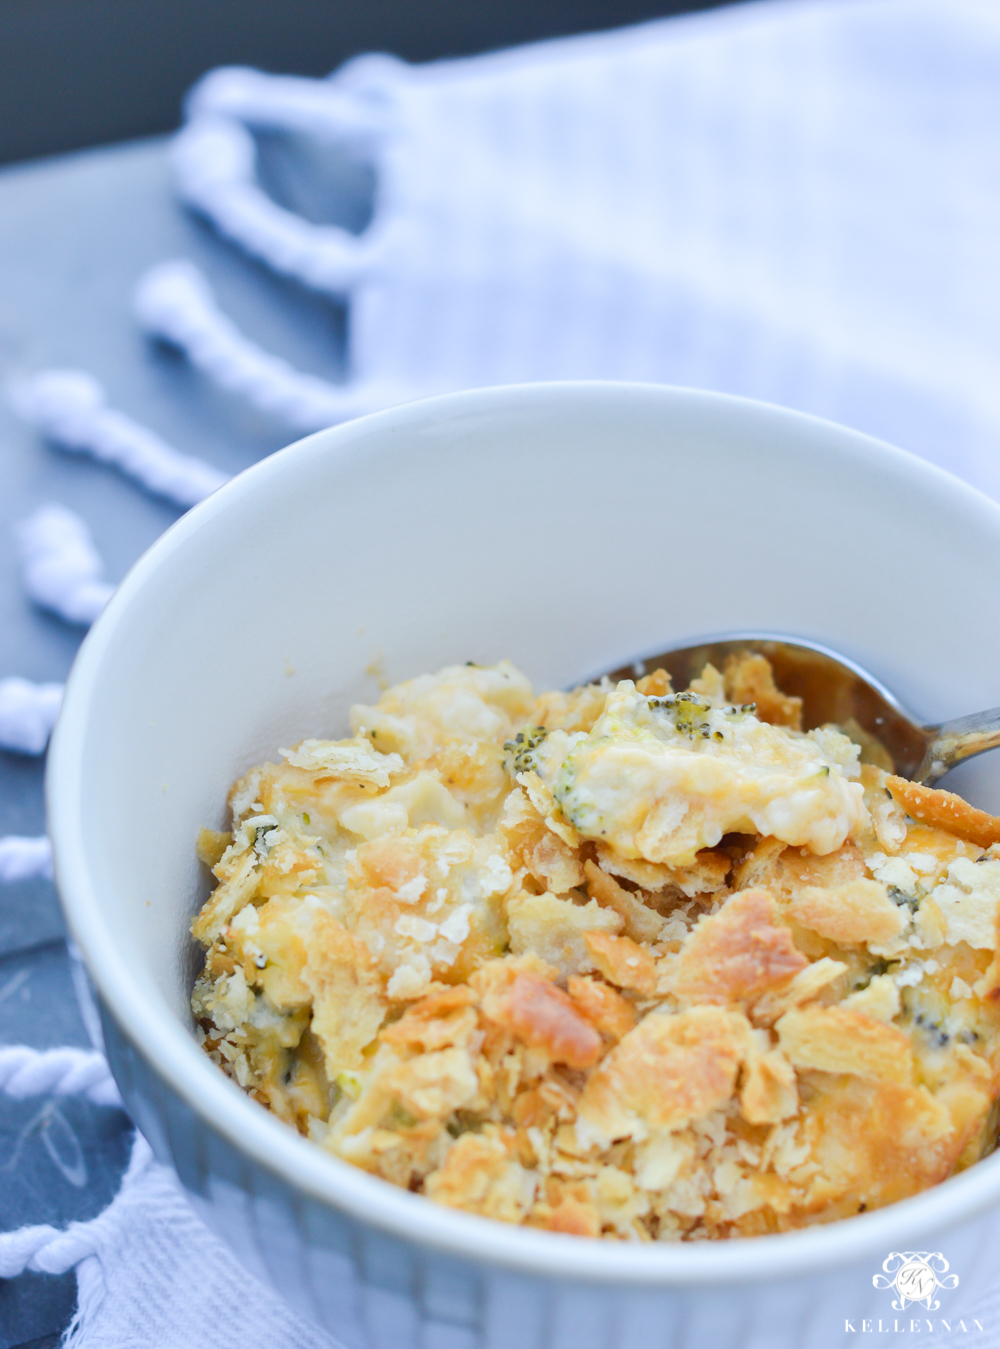 Favorite Casserole Side Dish- Cheesy Broccoli Cauliflower Casserole